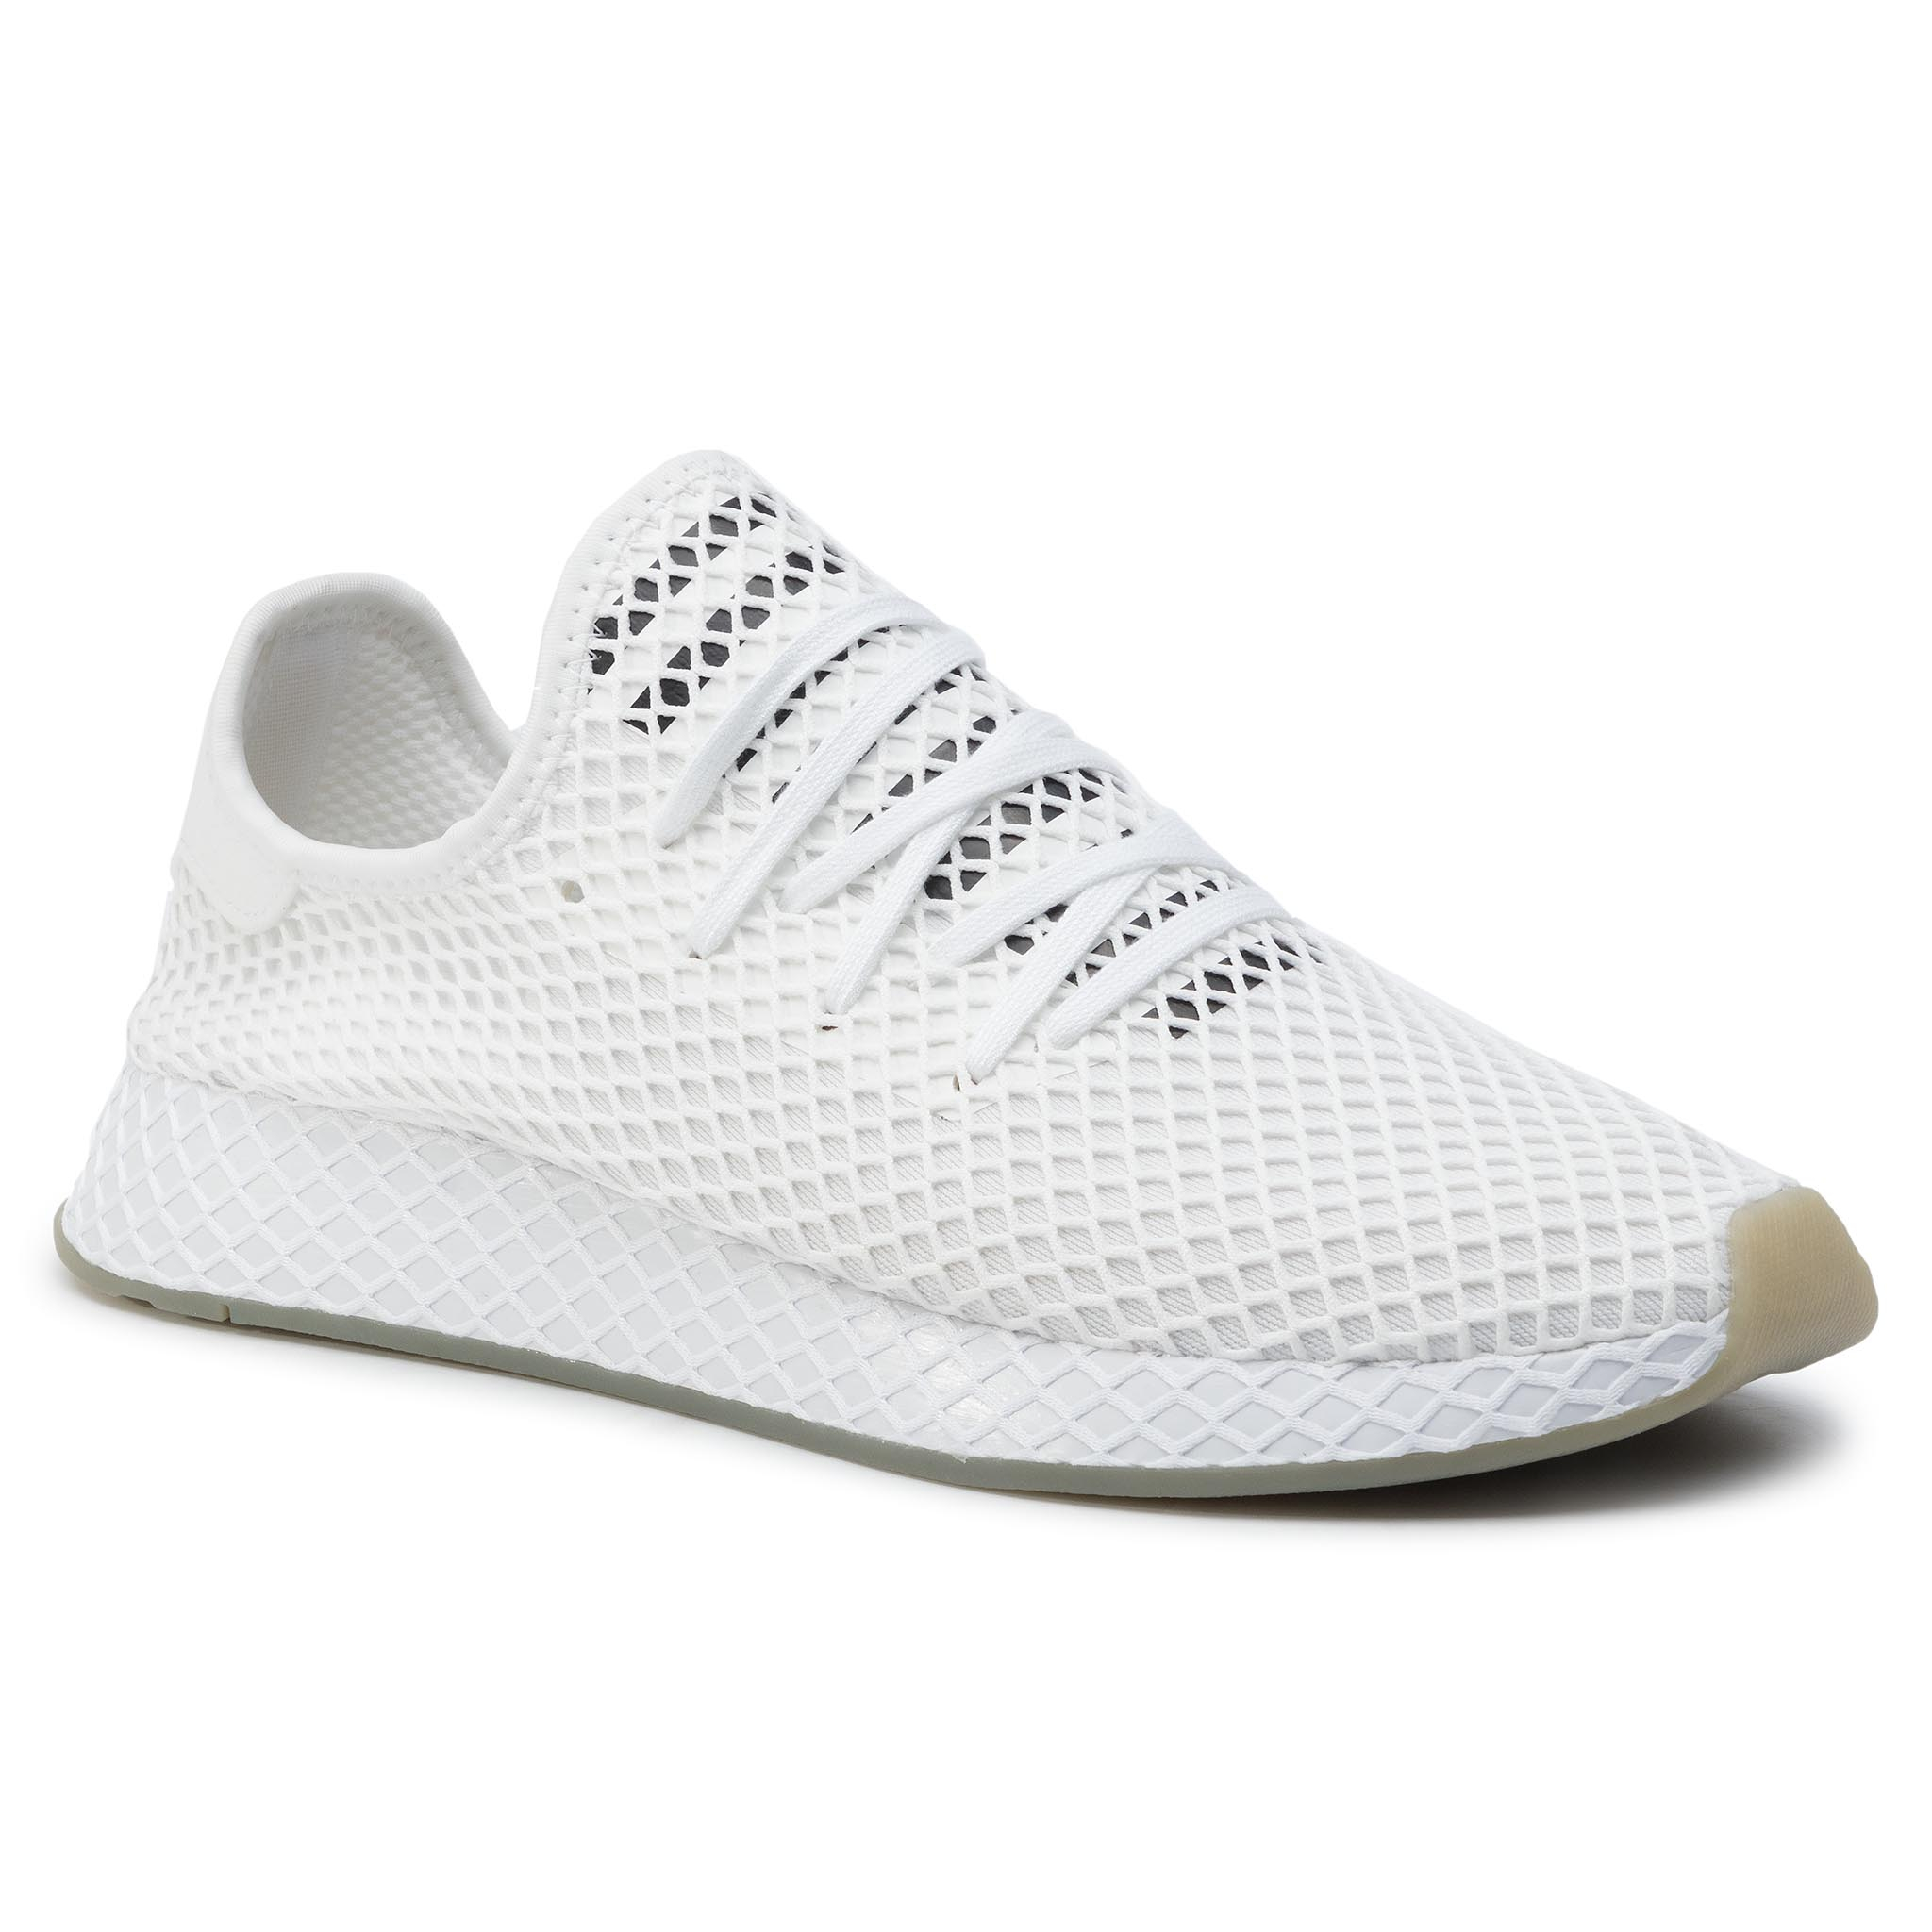 Shoes adidas - Deerupt Runner J CG6841 Icemi/Ftwwht/Cleora ...